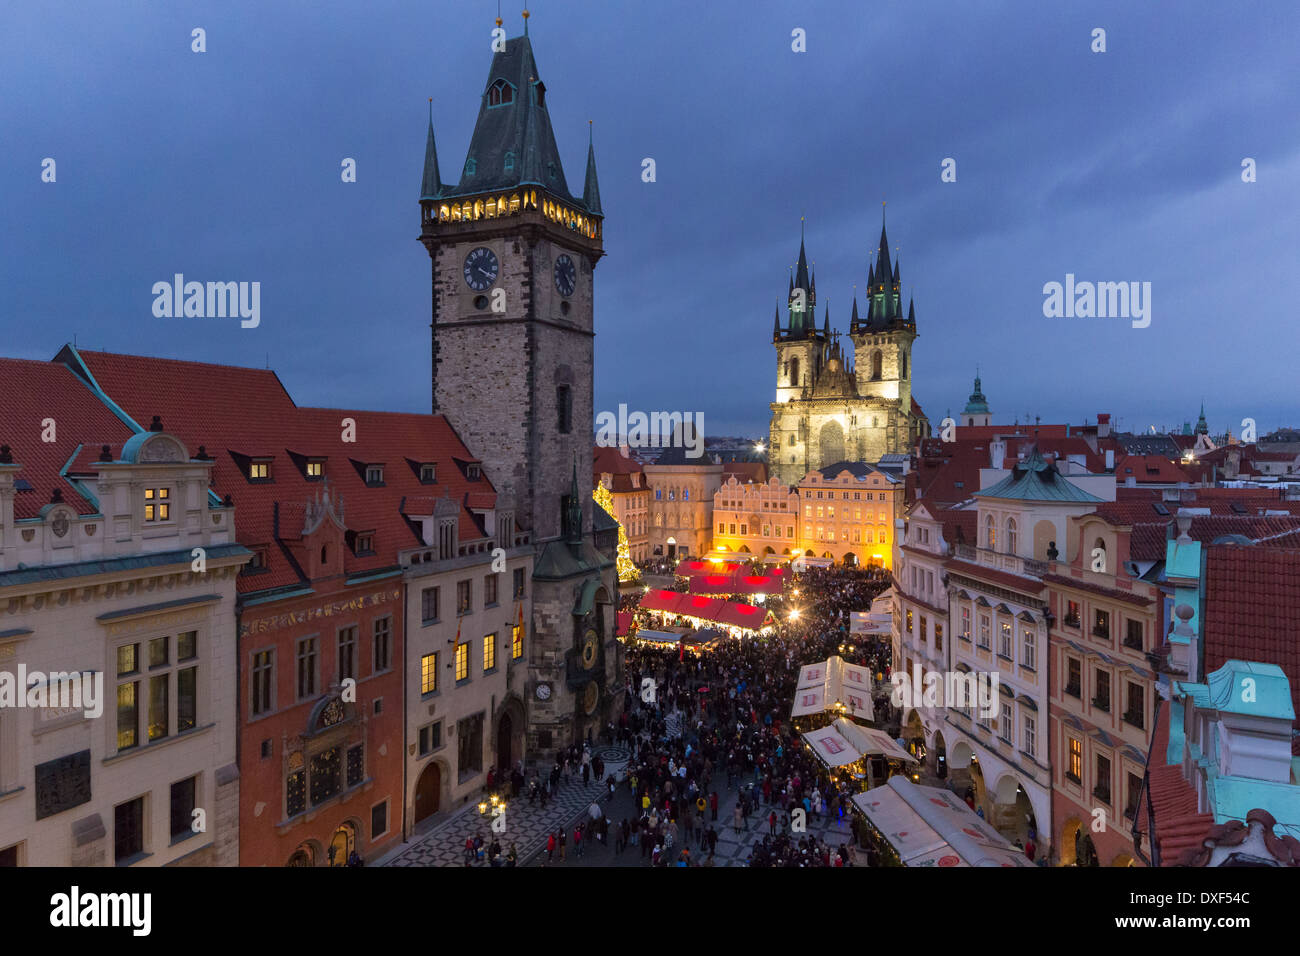 the Old Town Square at dusk, with the Old Town Hall and Church of Our Lady Before Tyn, Prague - Stock Image